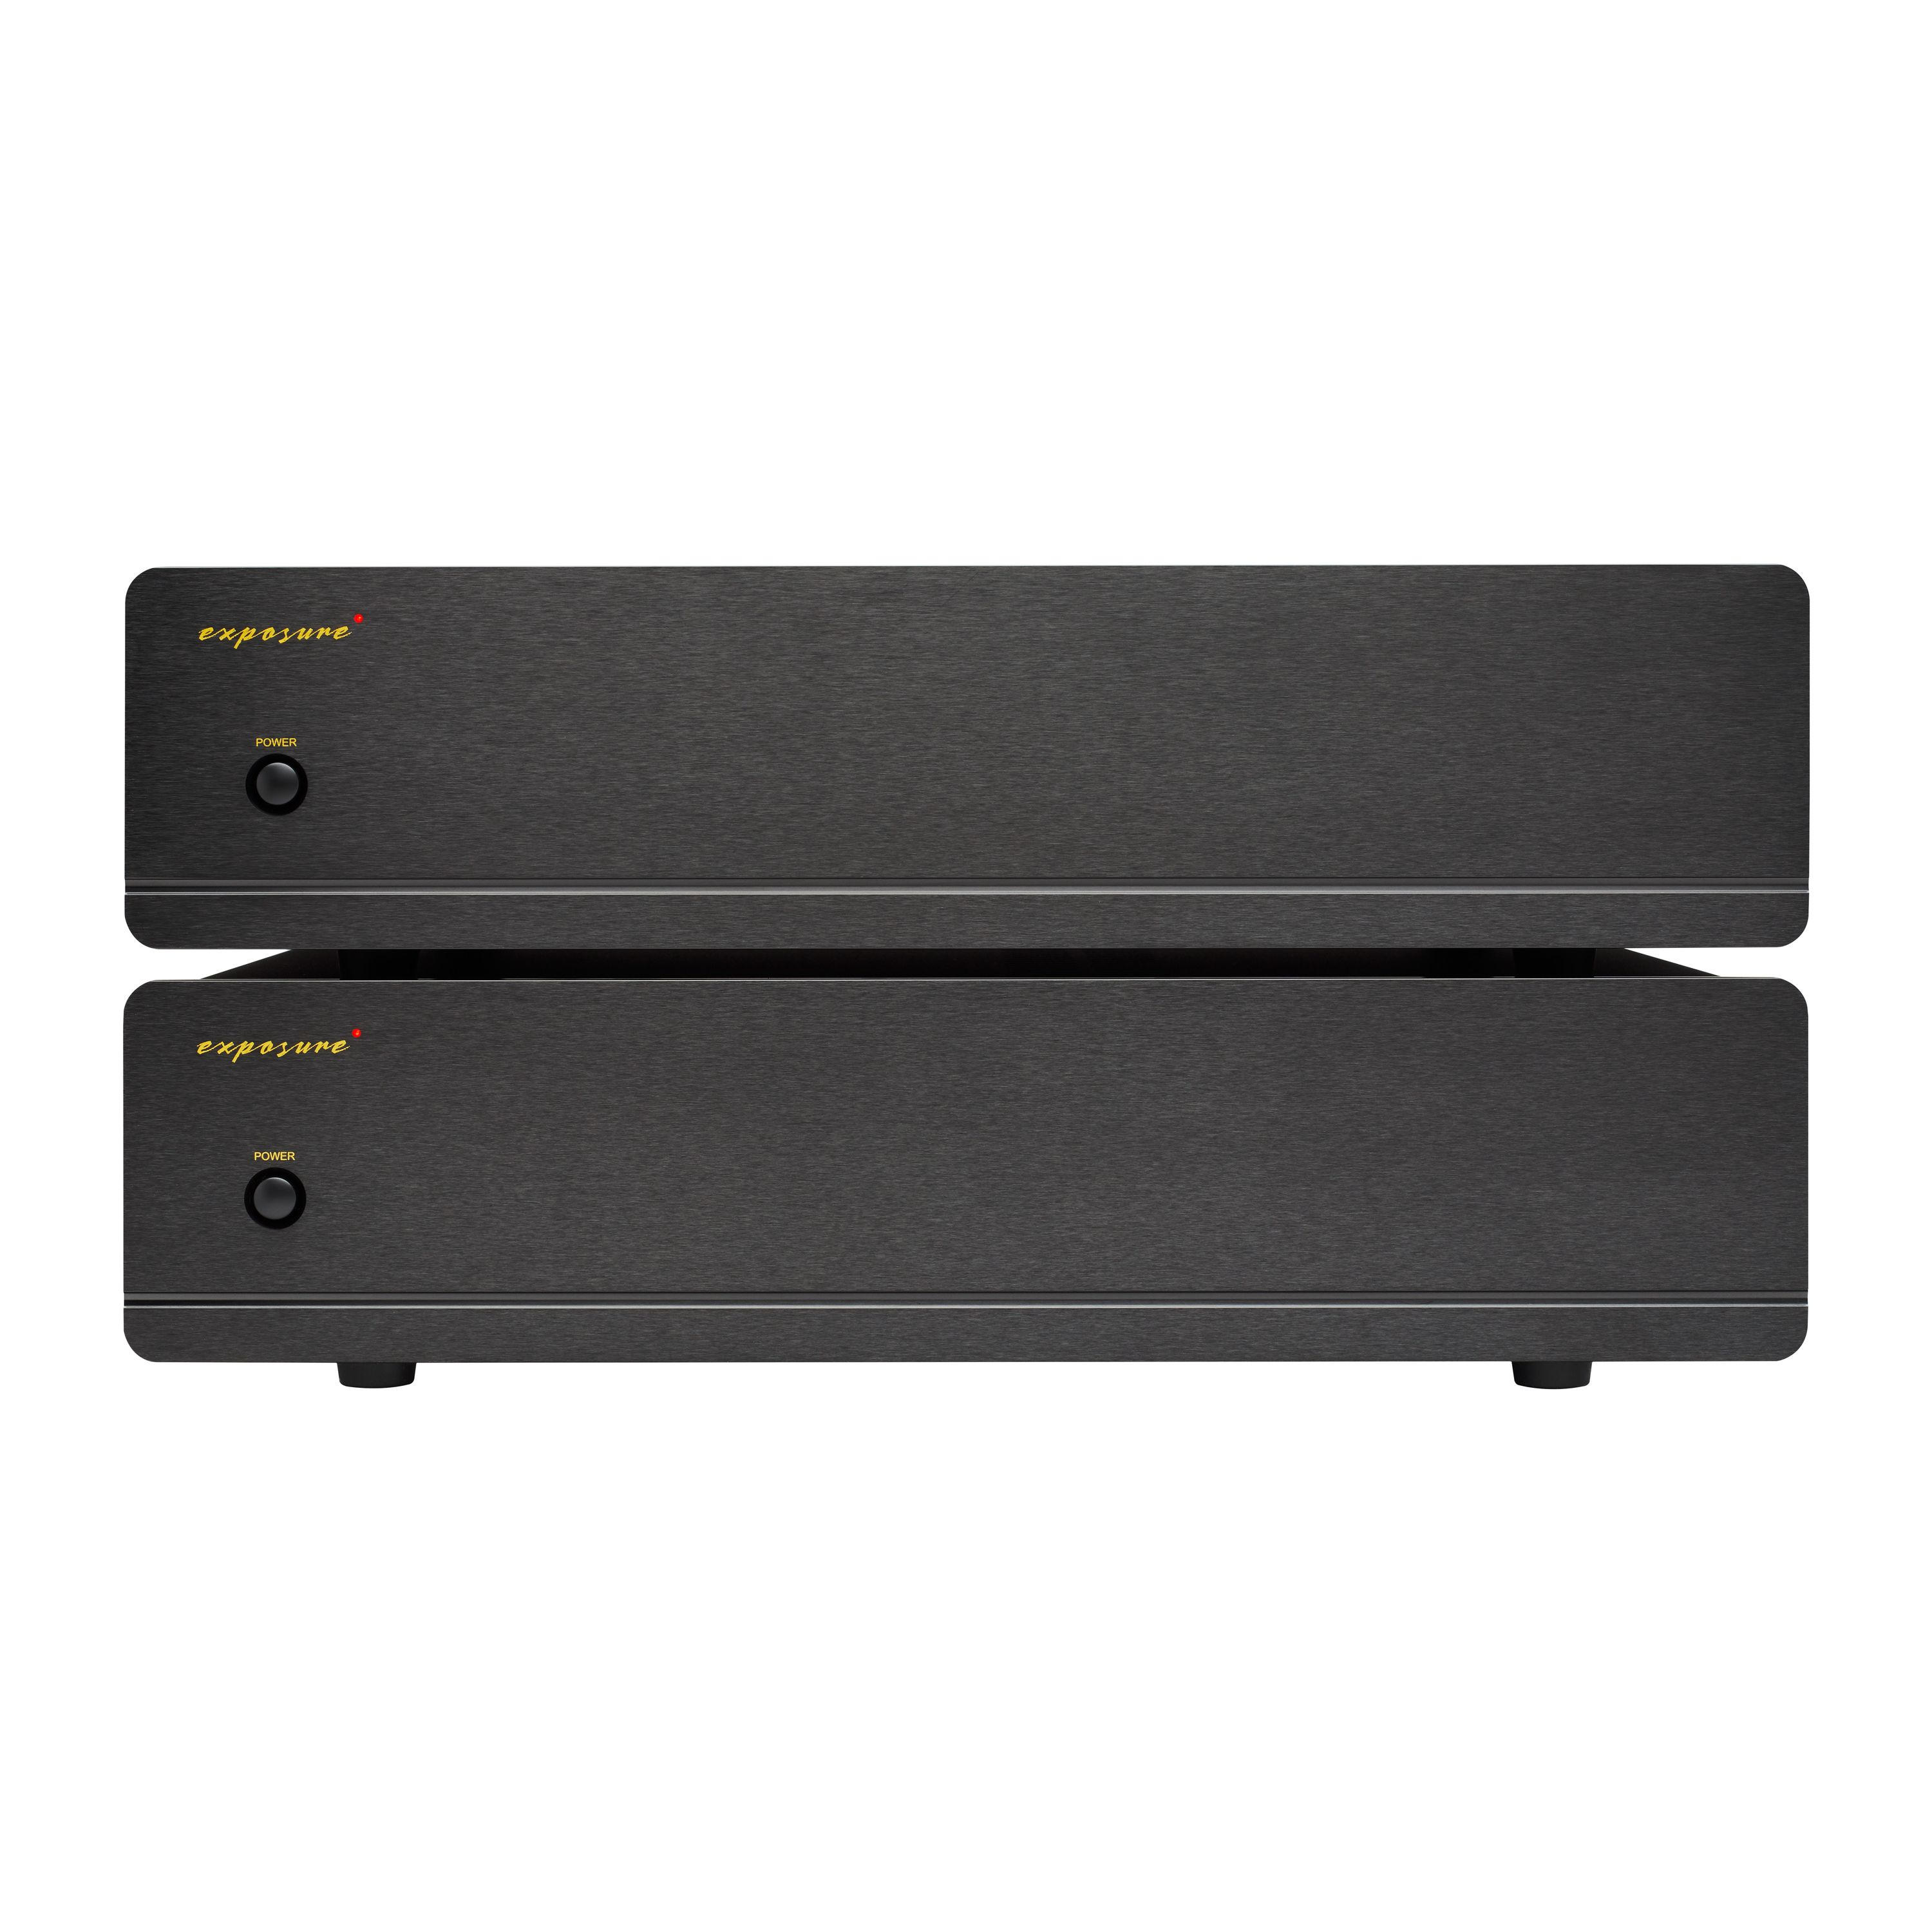 Exposure 5010 Mono Power Amplifier Trade In Available High Quality Monoblock